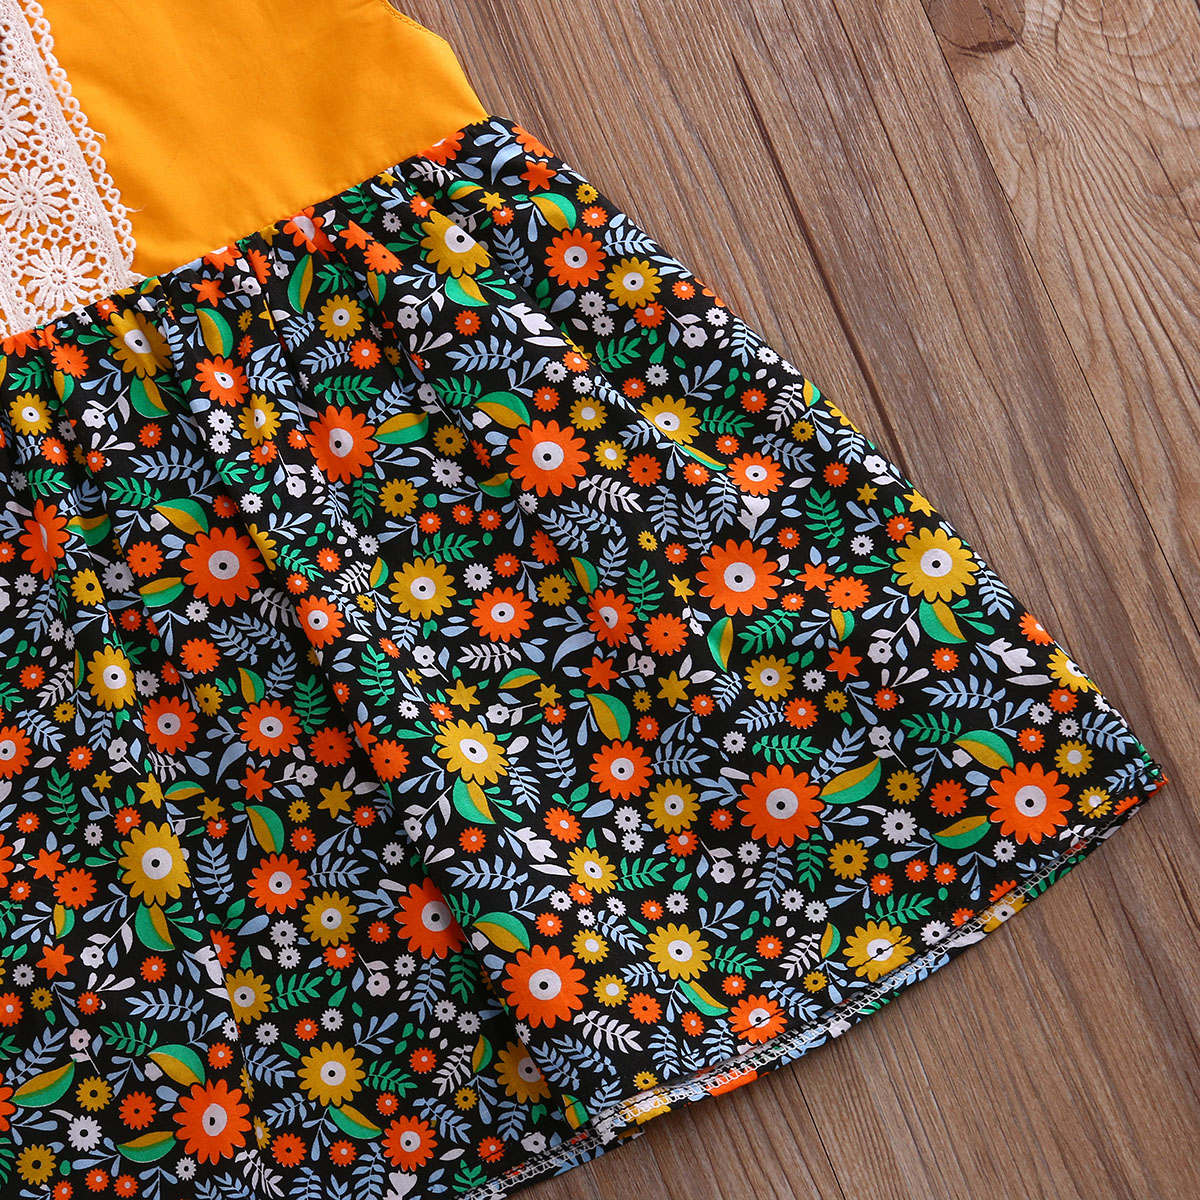 Bohemian-Floral-Toddler-Baby-Kids-Girls-Summer-Lace-Flower-Sundress-Party-Dress-Clothes-0-4T-3